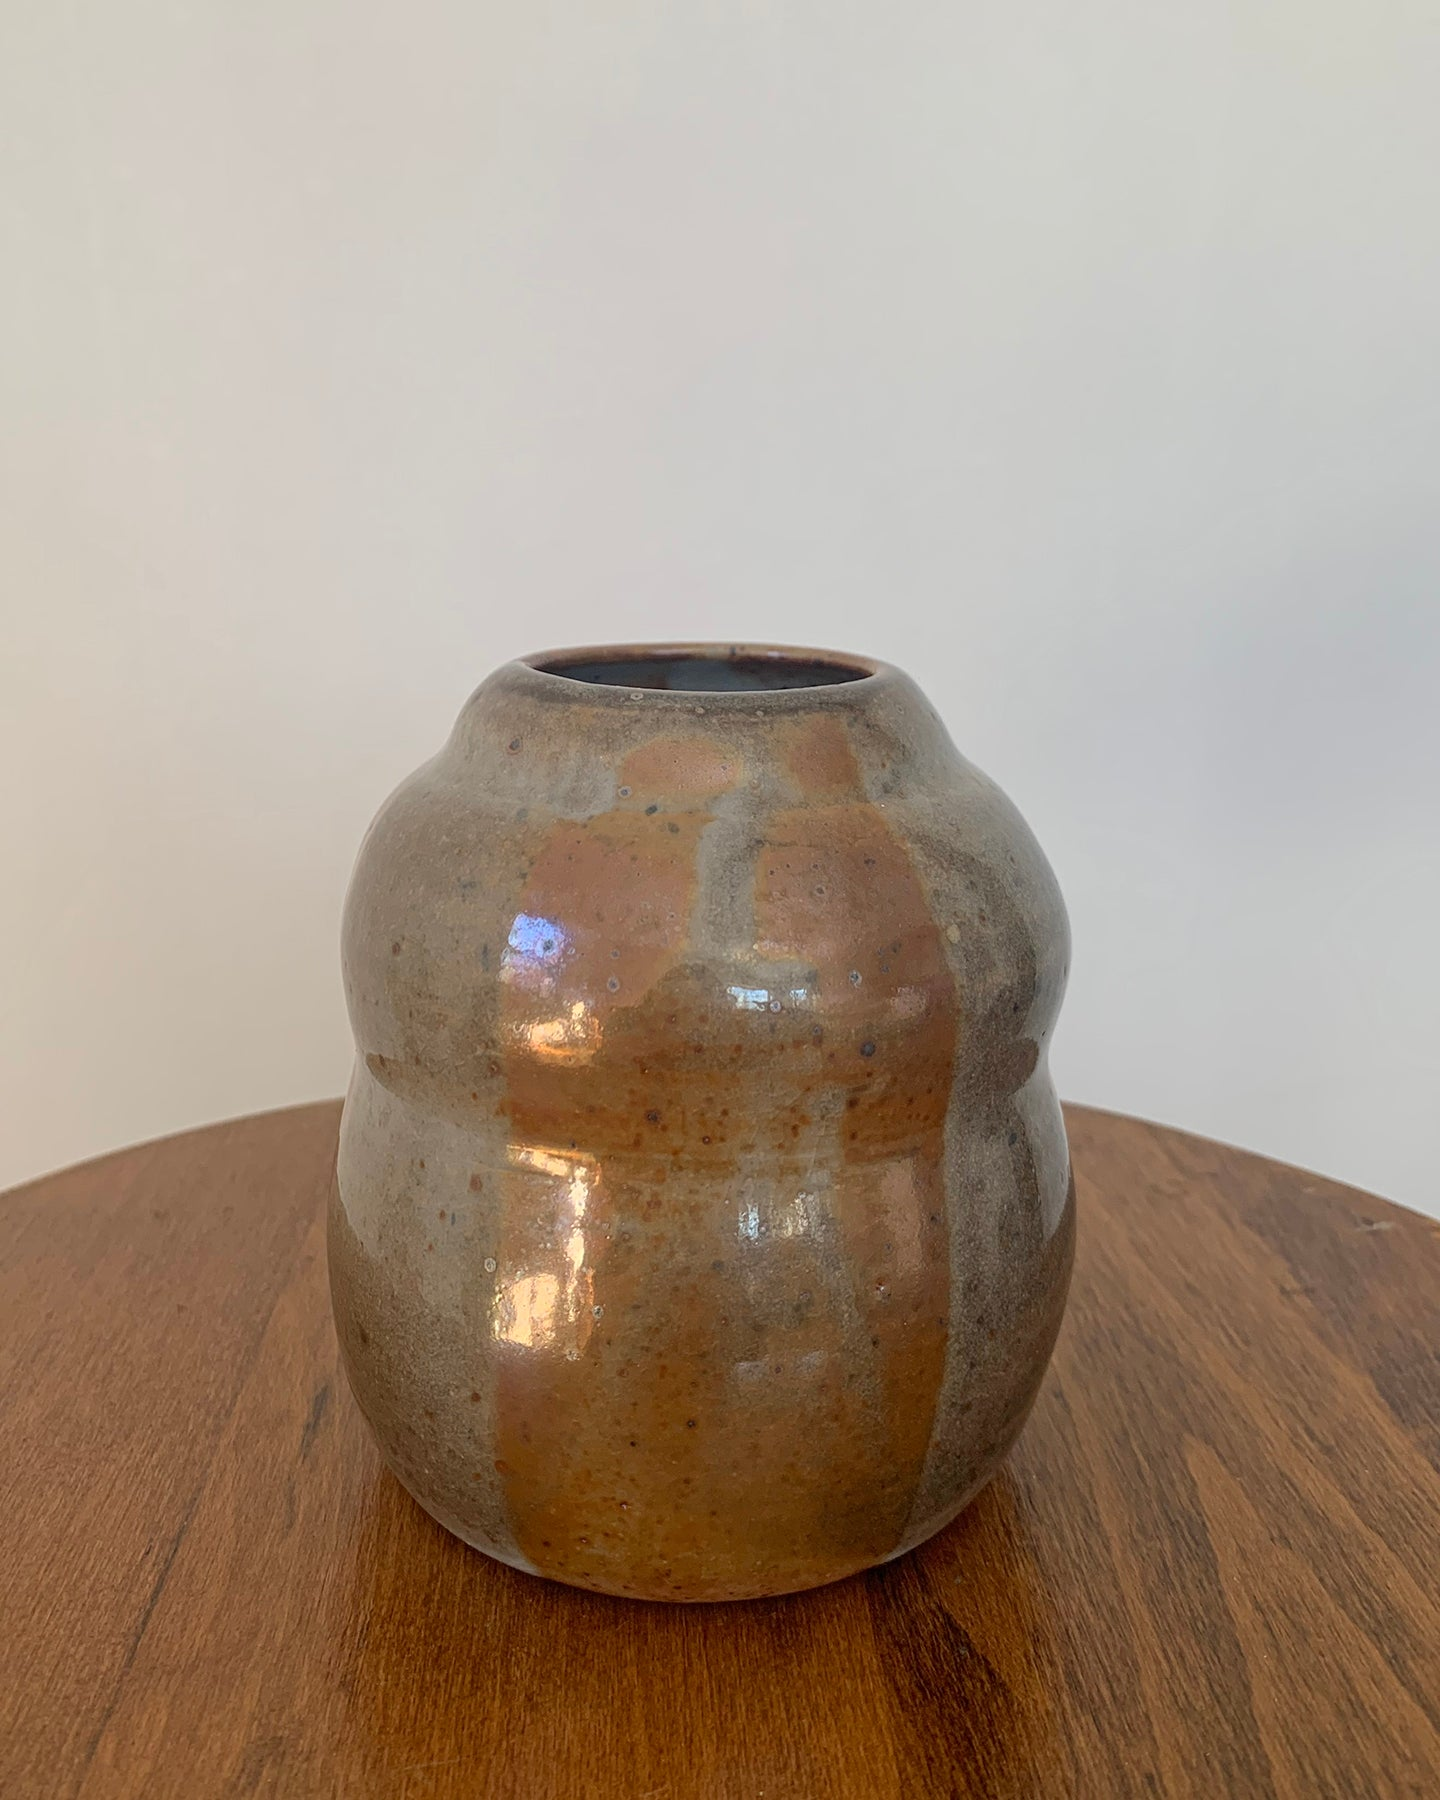 Cocoa Curves Vase No. 2